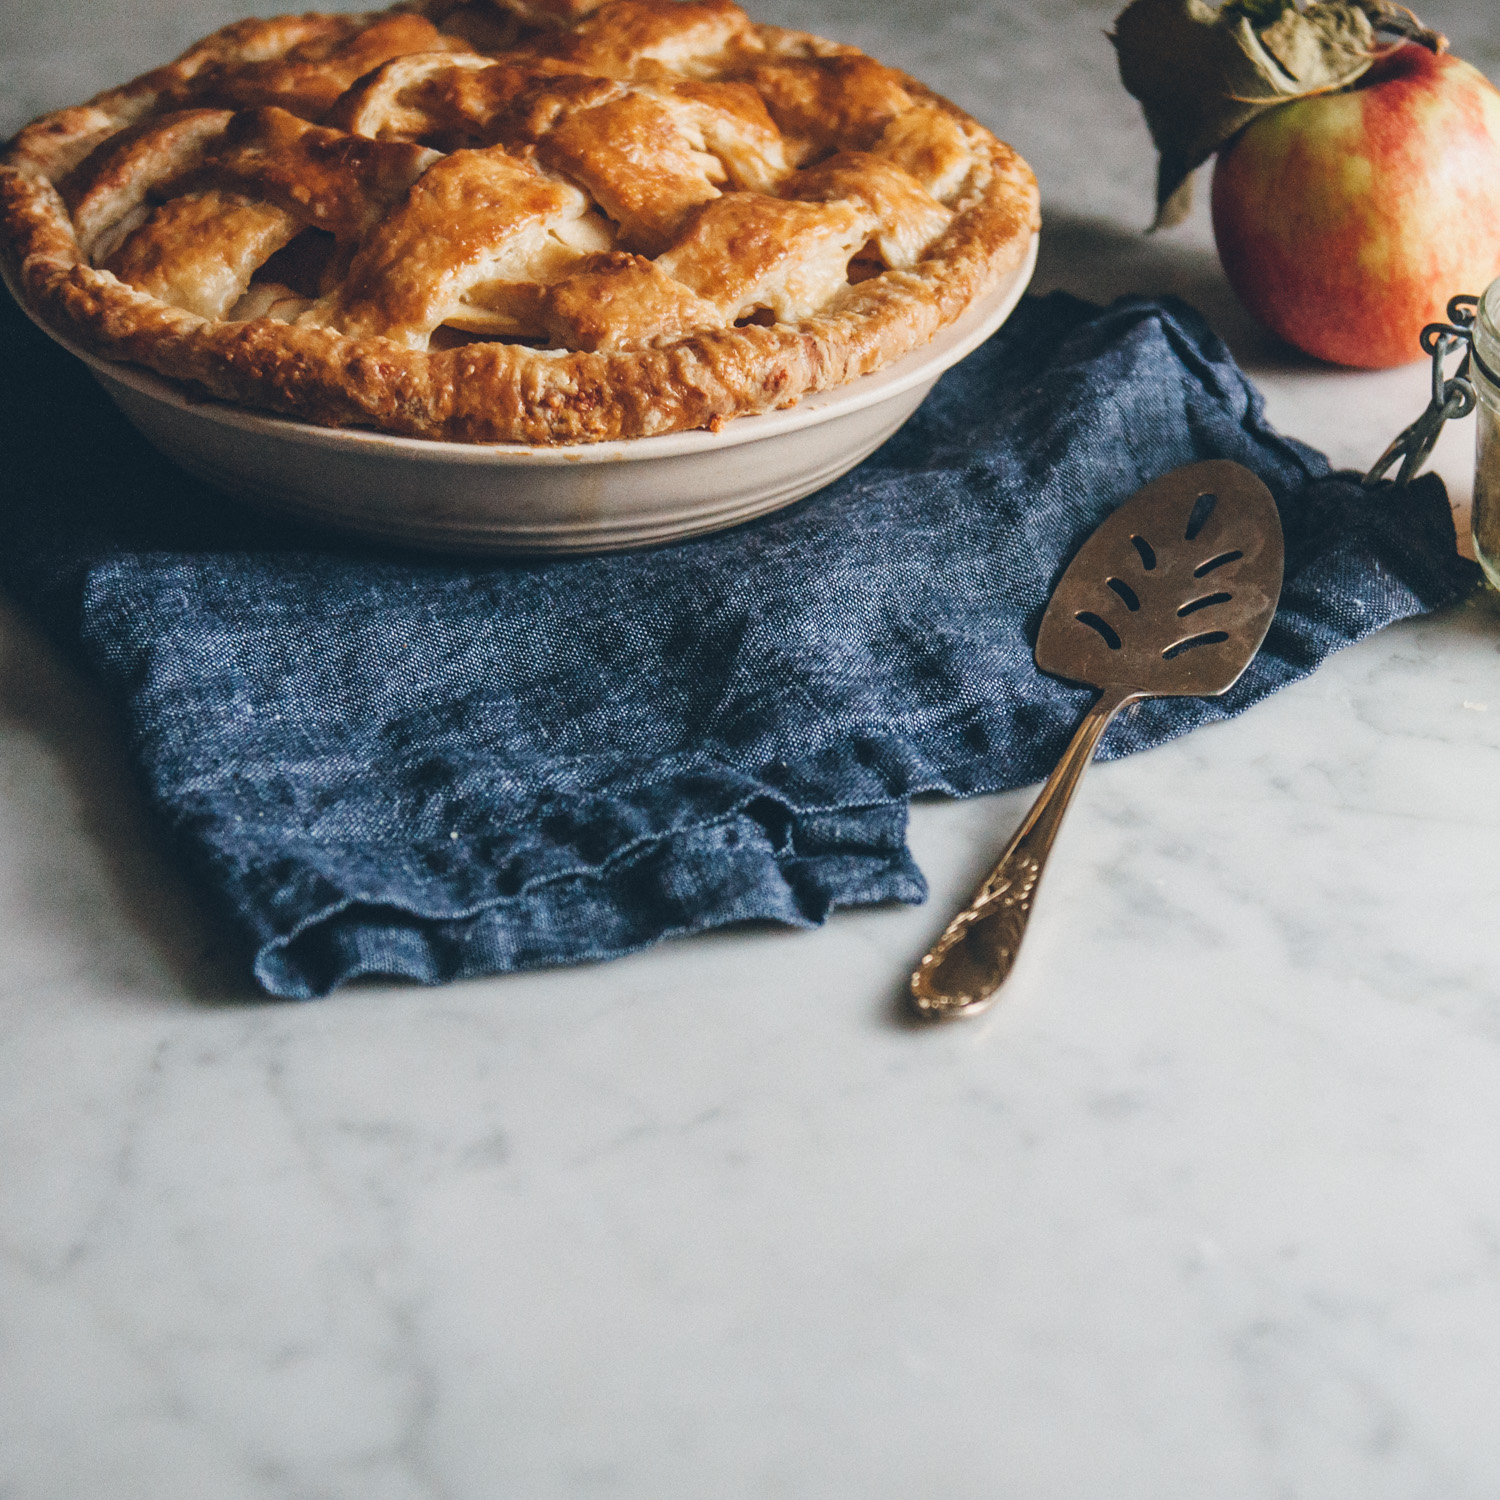 Apple Pie with a Cheddar Cheese Crust